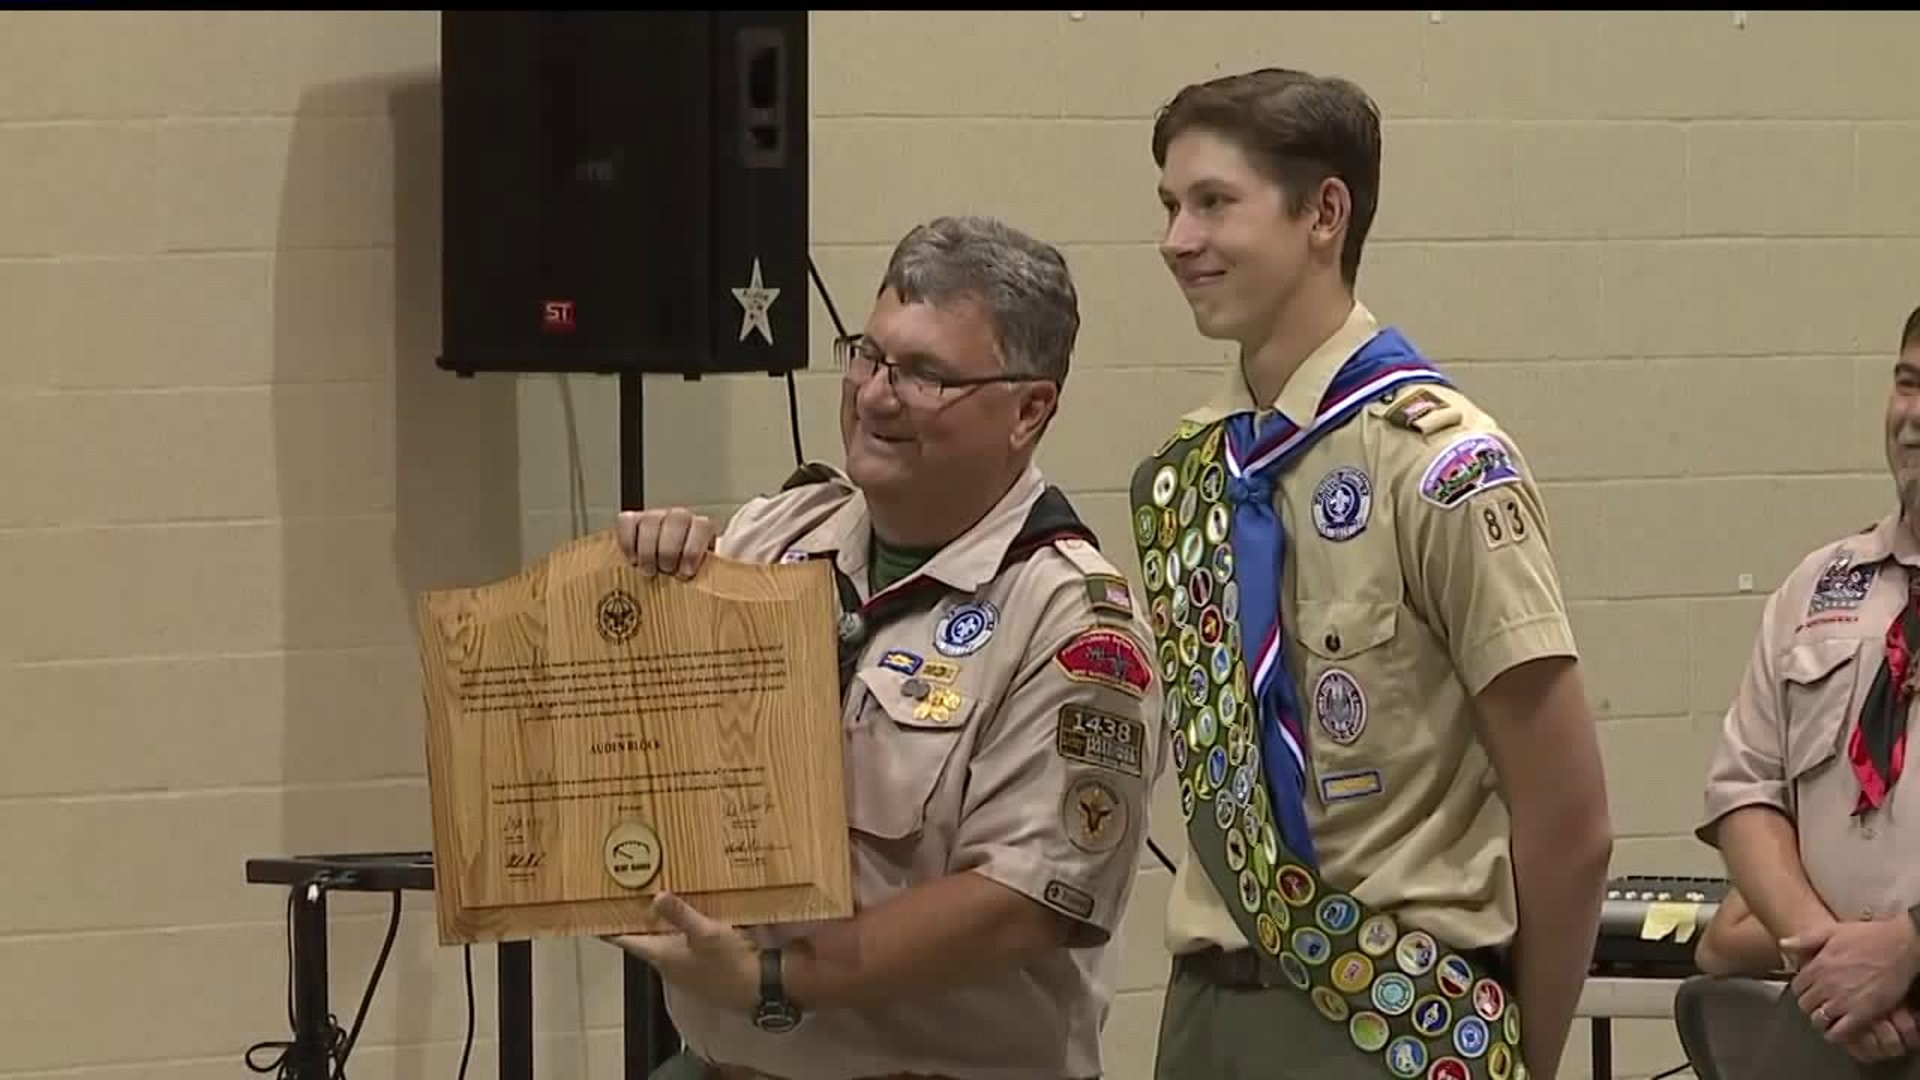 Eagle Scout Earns All 137 Merit Badges